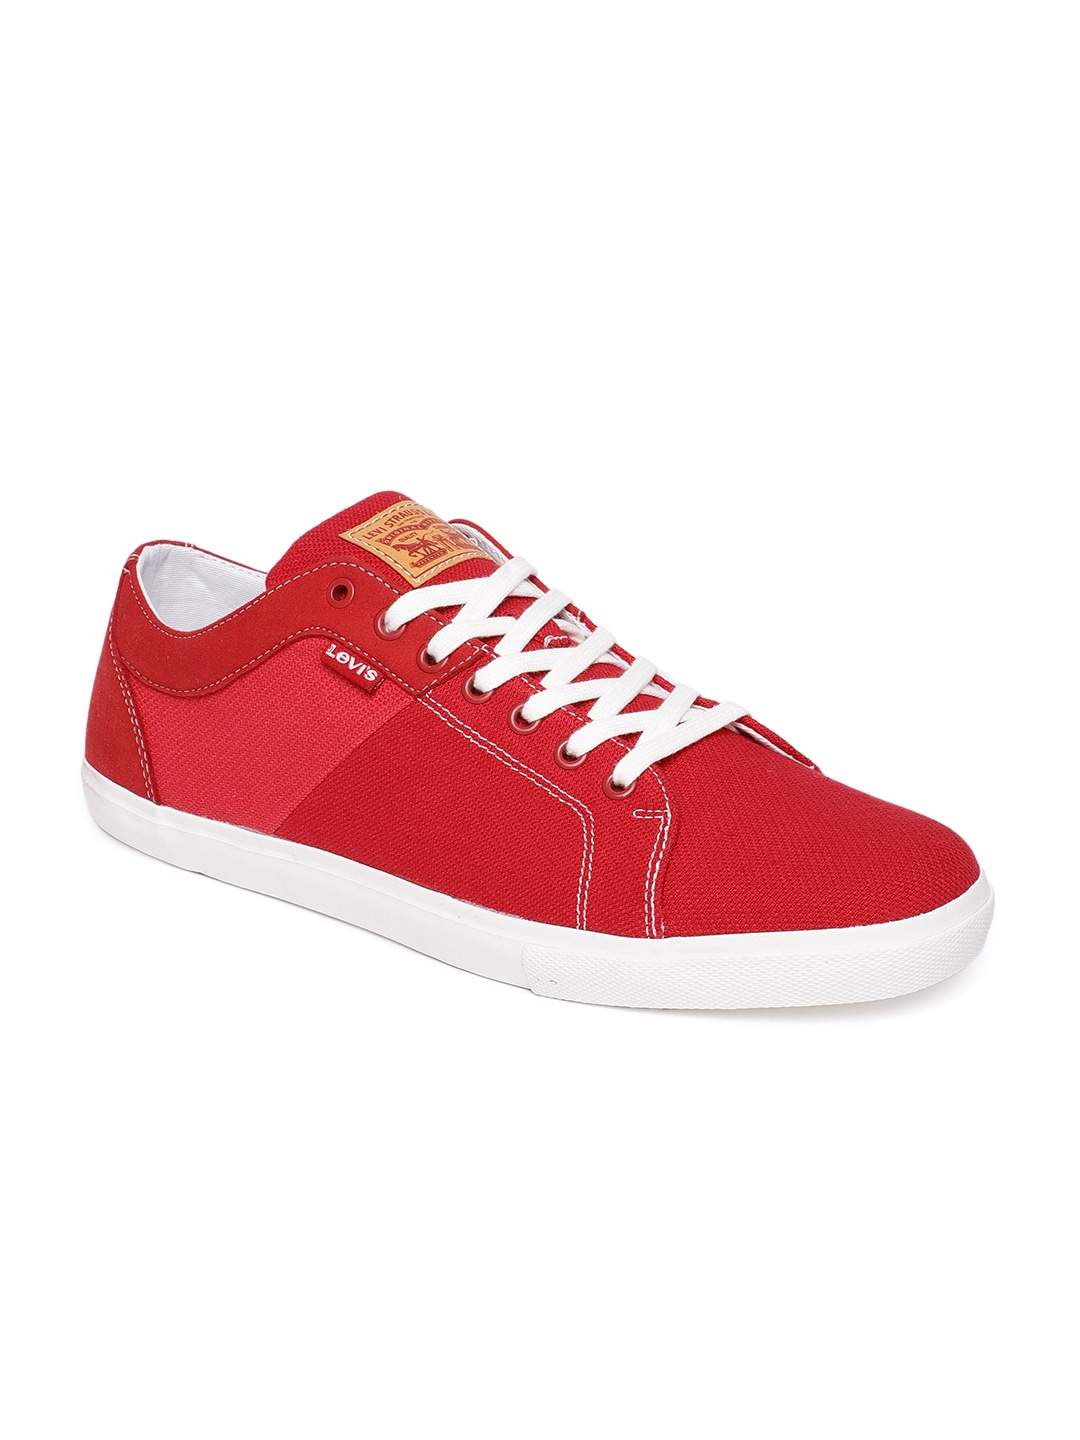 Red Solid Sneakers